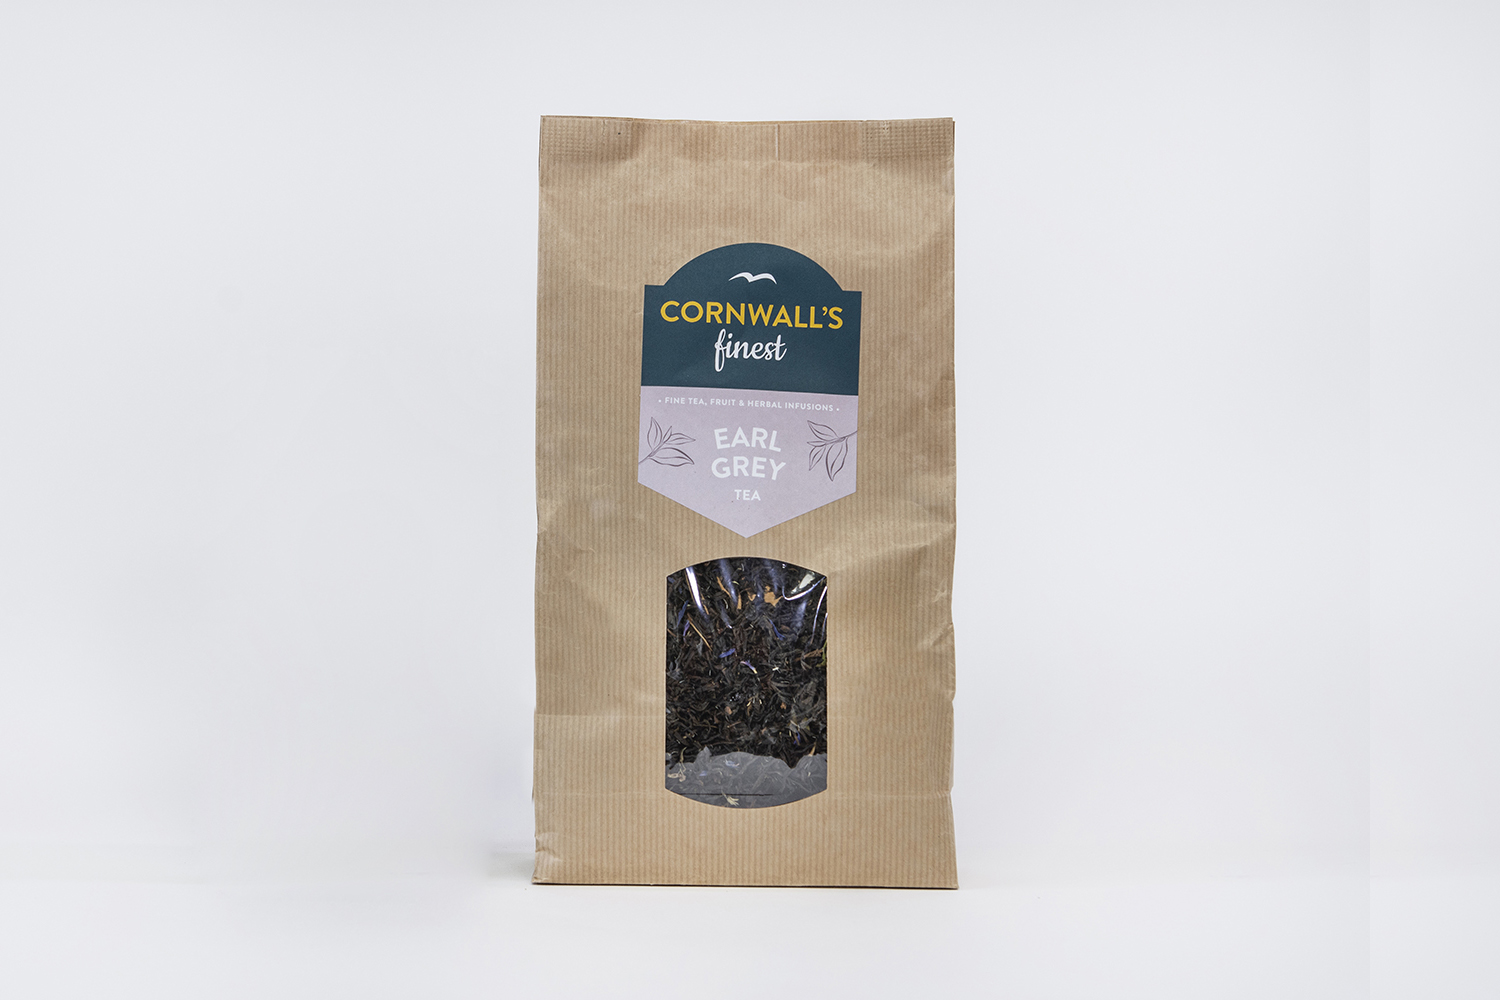 Cornwall's Finest Earl Grey Leaf Tea